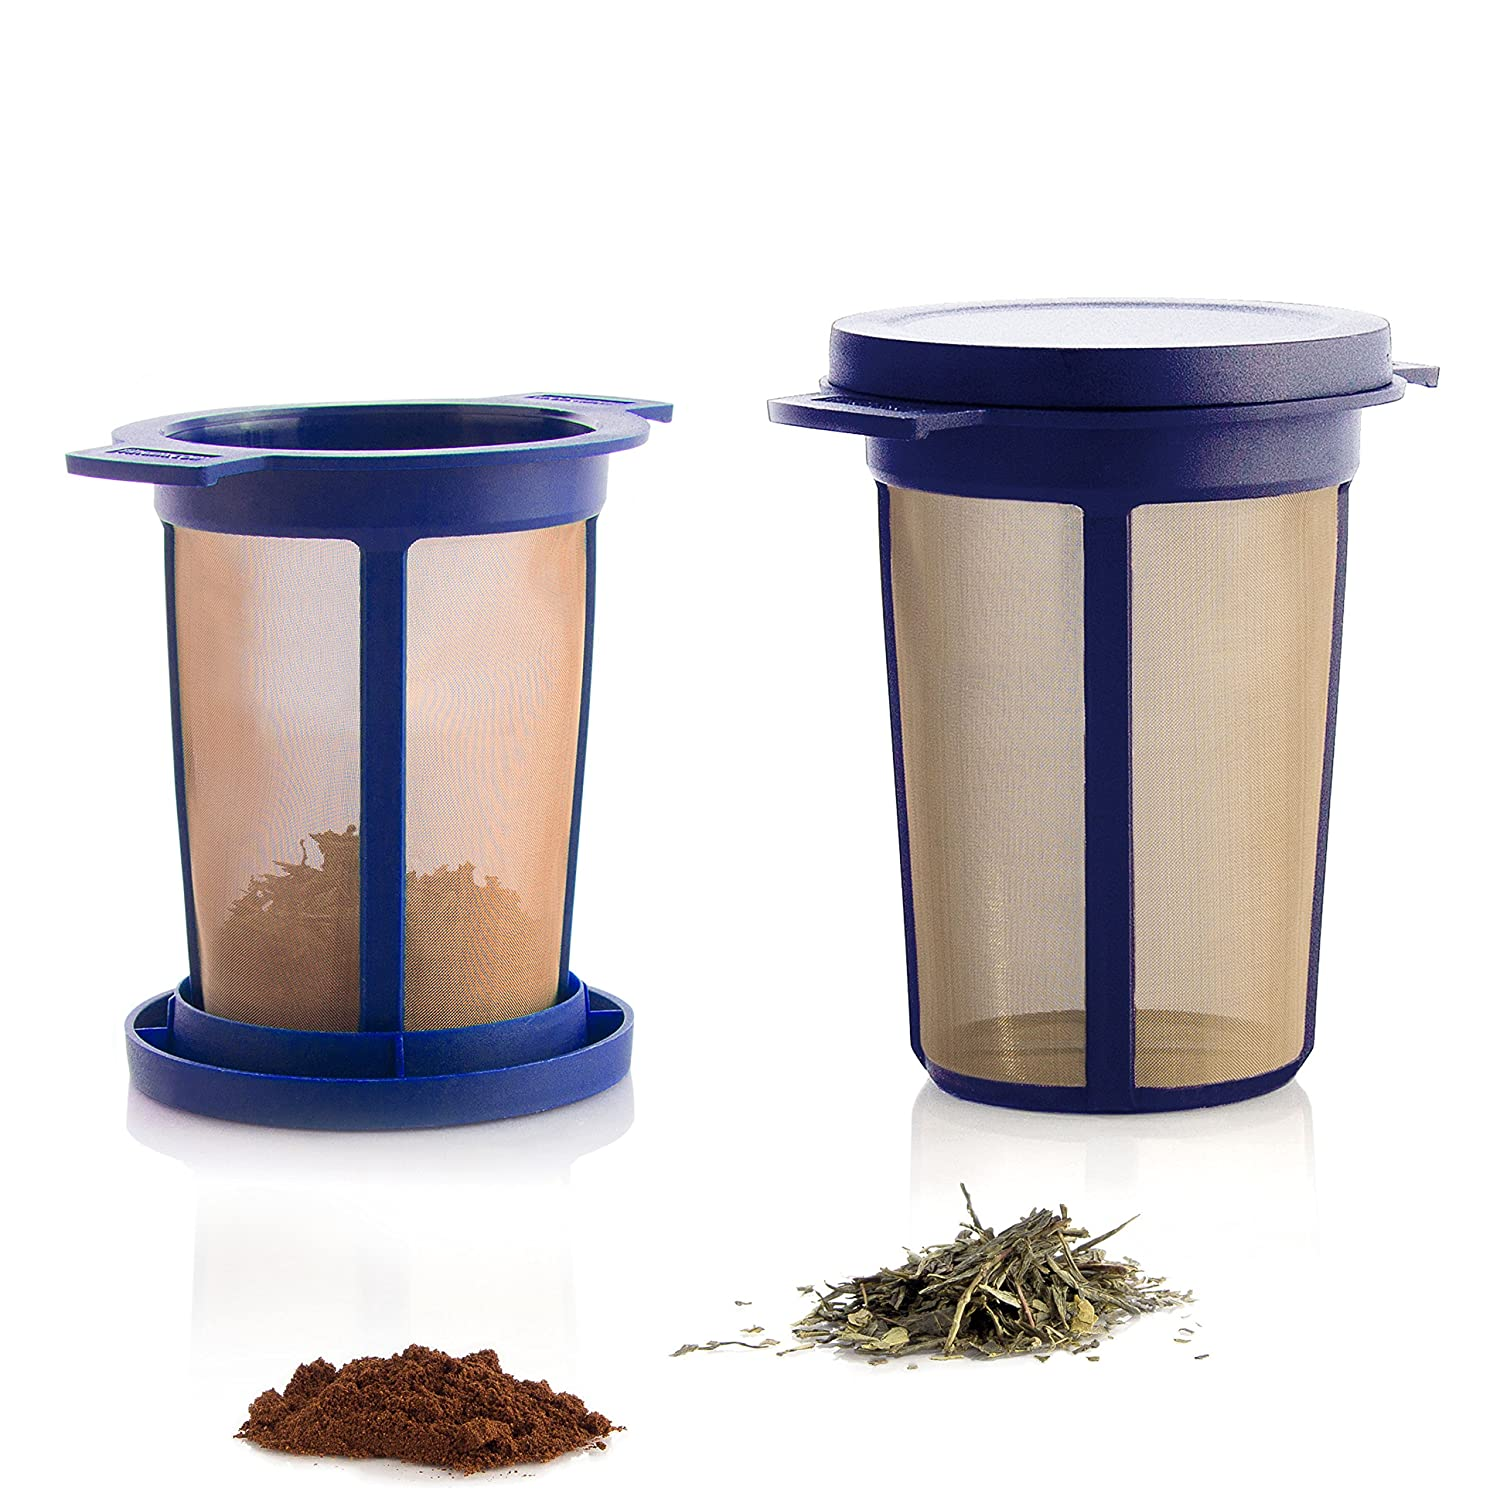 Finum Reusable Stainless Steel Coffee and Tea Infusing Mesh Brewing Basket, Large, Blue